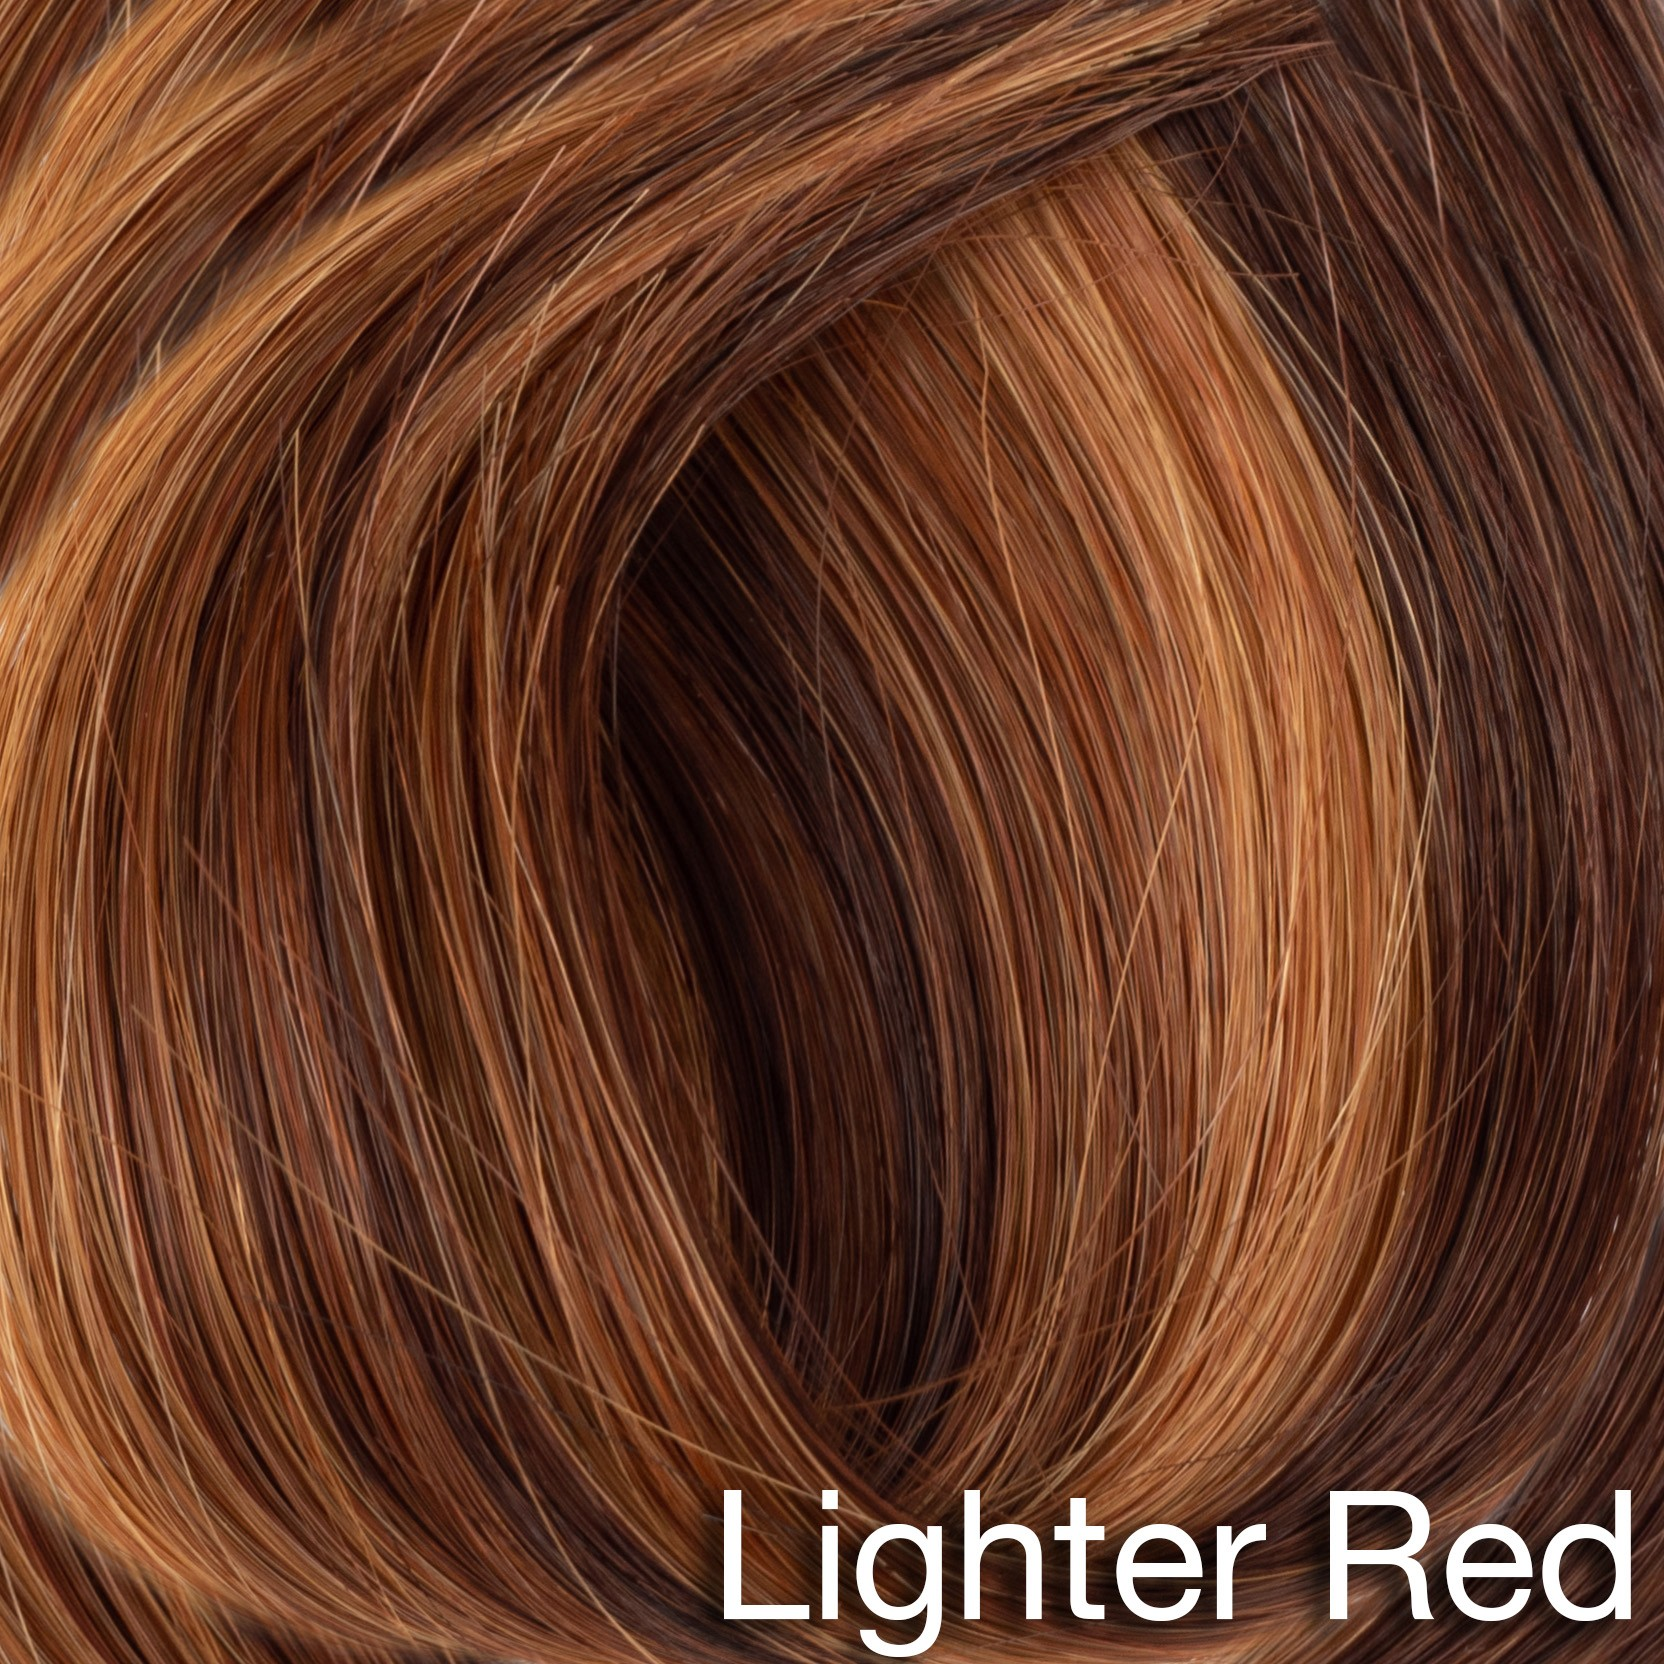 Lighter Red